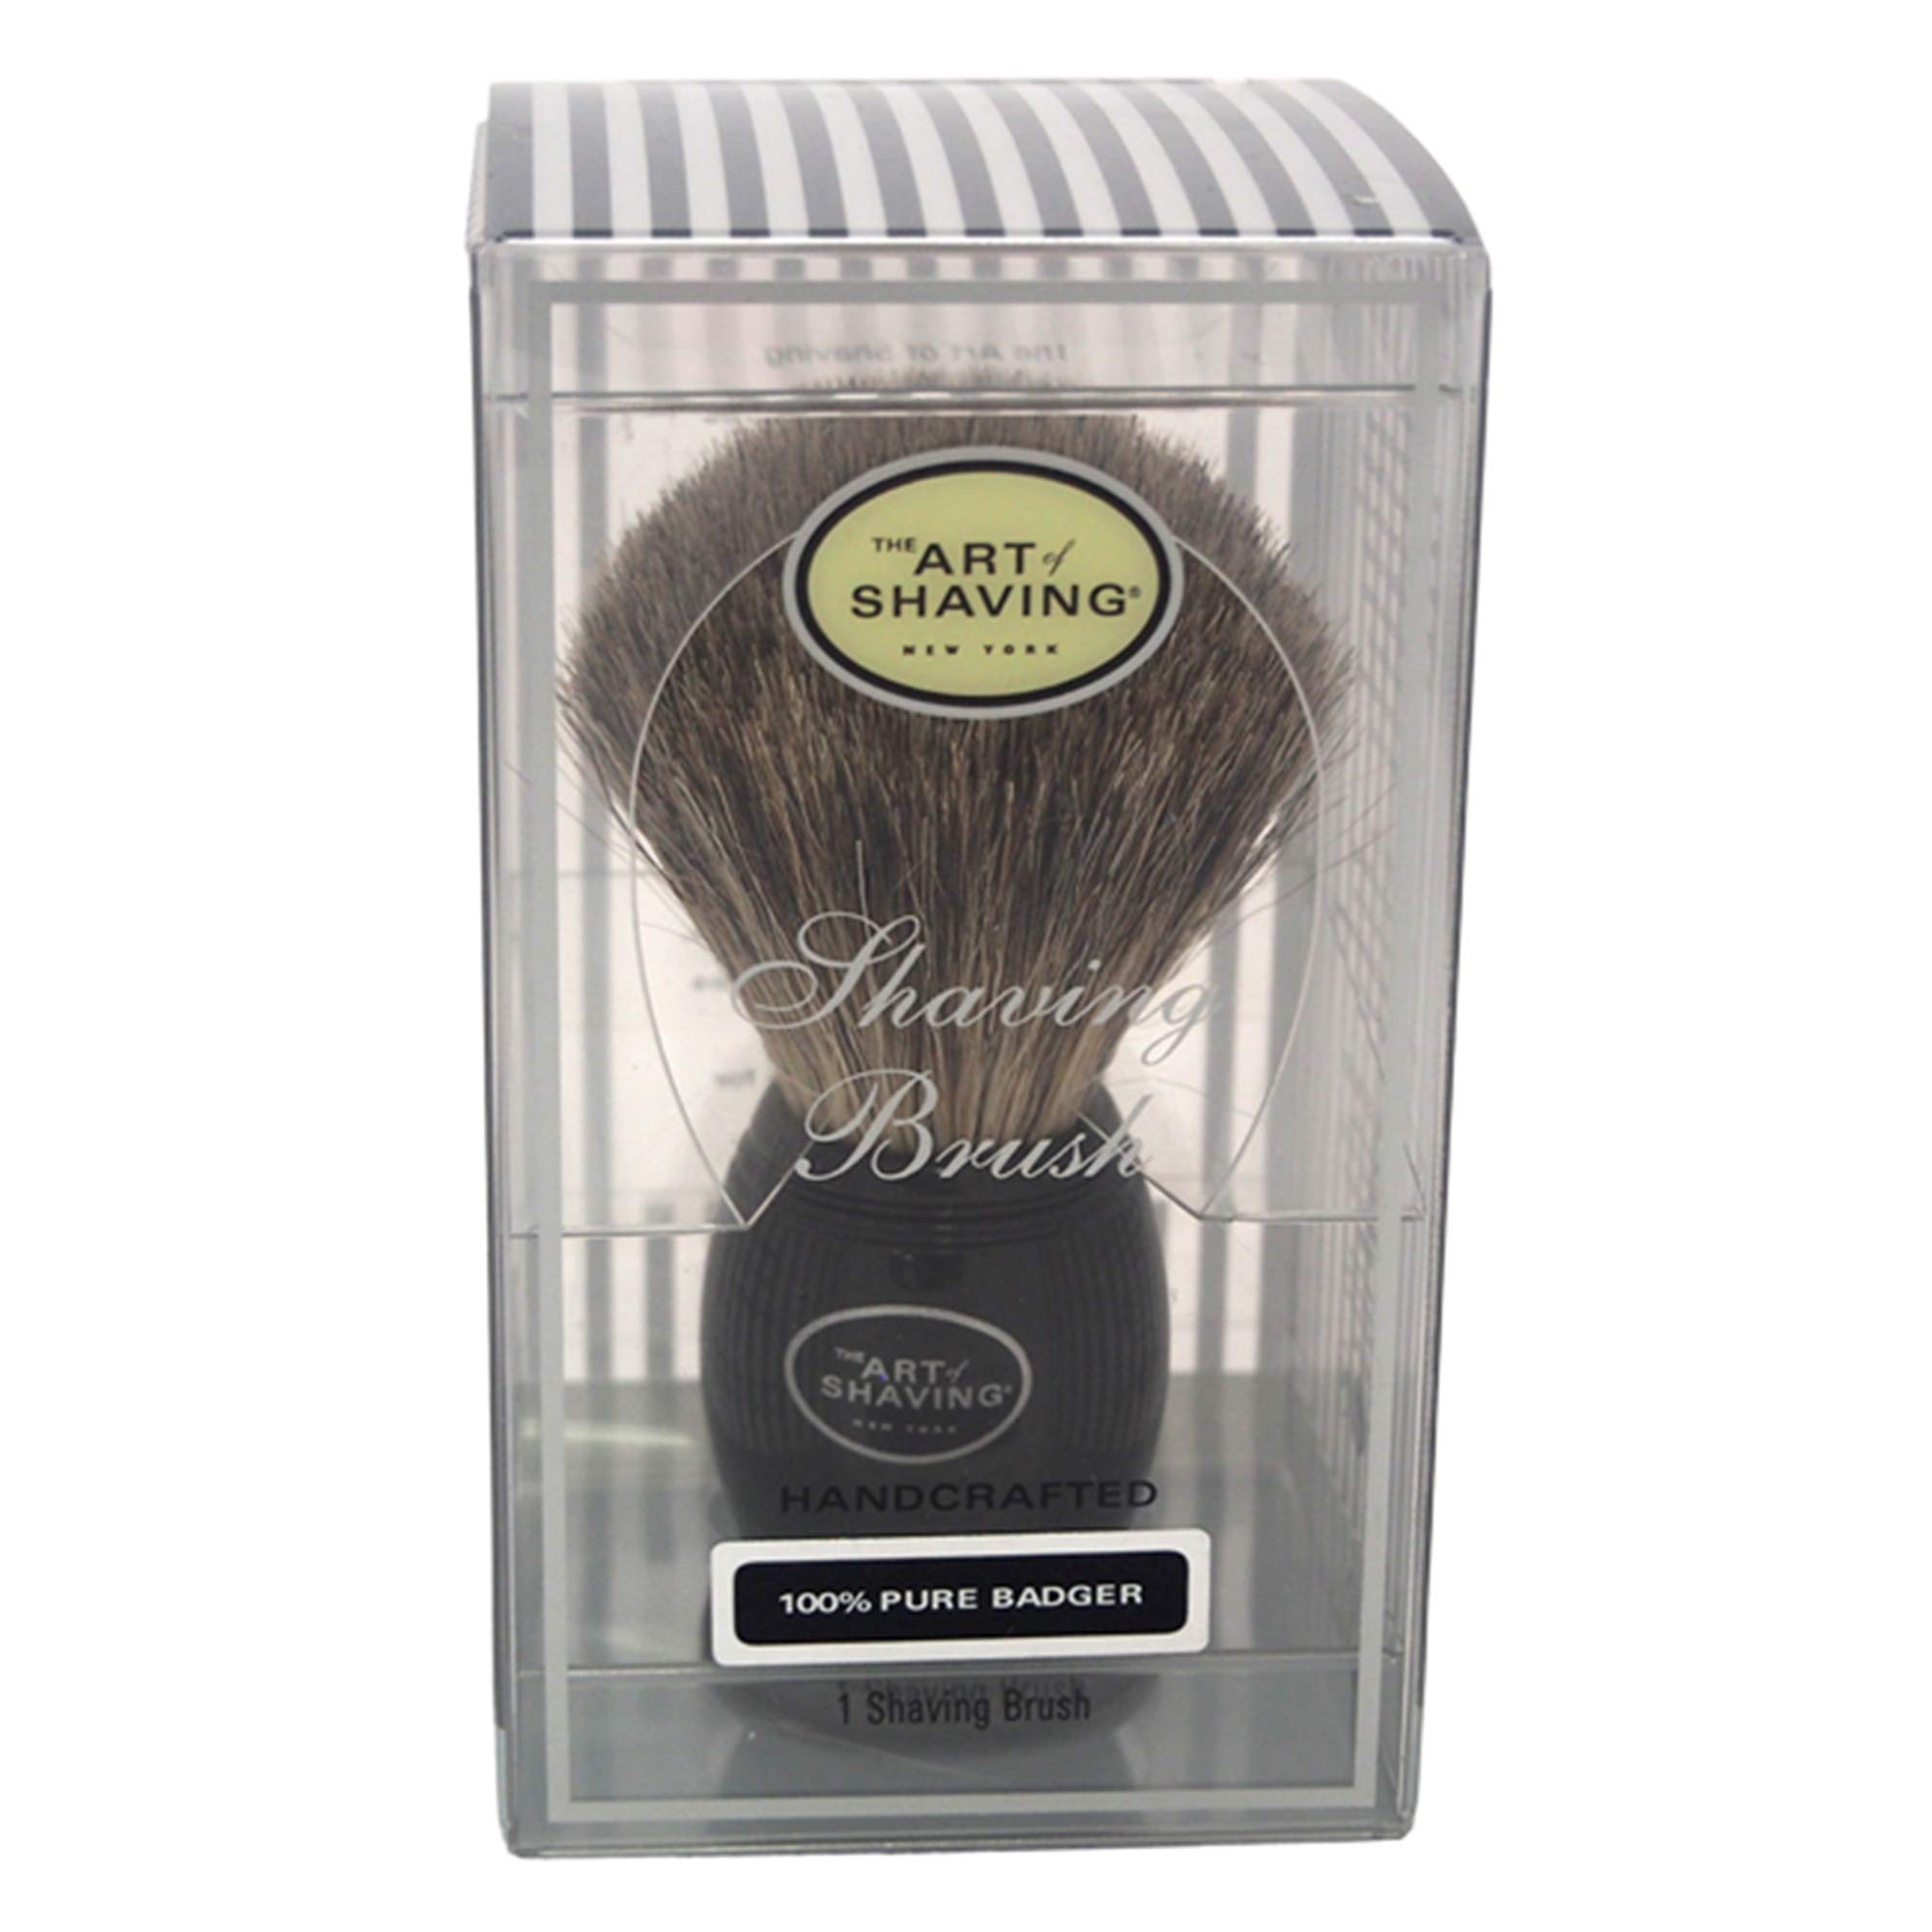 The Art of Shaving Pure Badger Shaving Brush, Black by The Art of Shaving